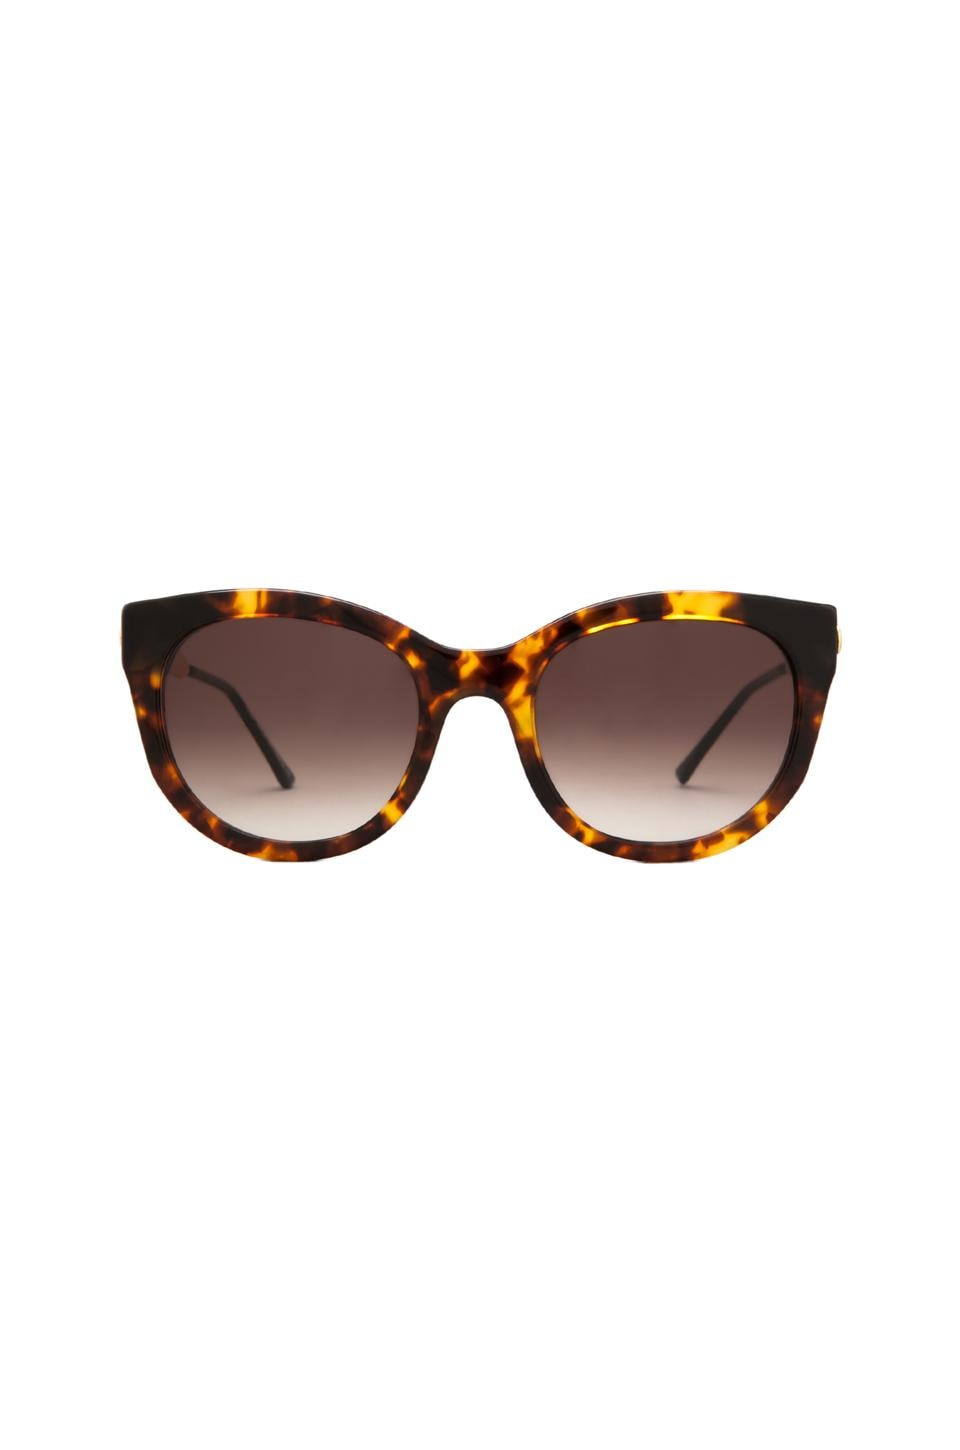 Thierry Lasry Lively Sunglasses in Warm Tortoise